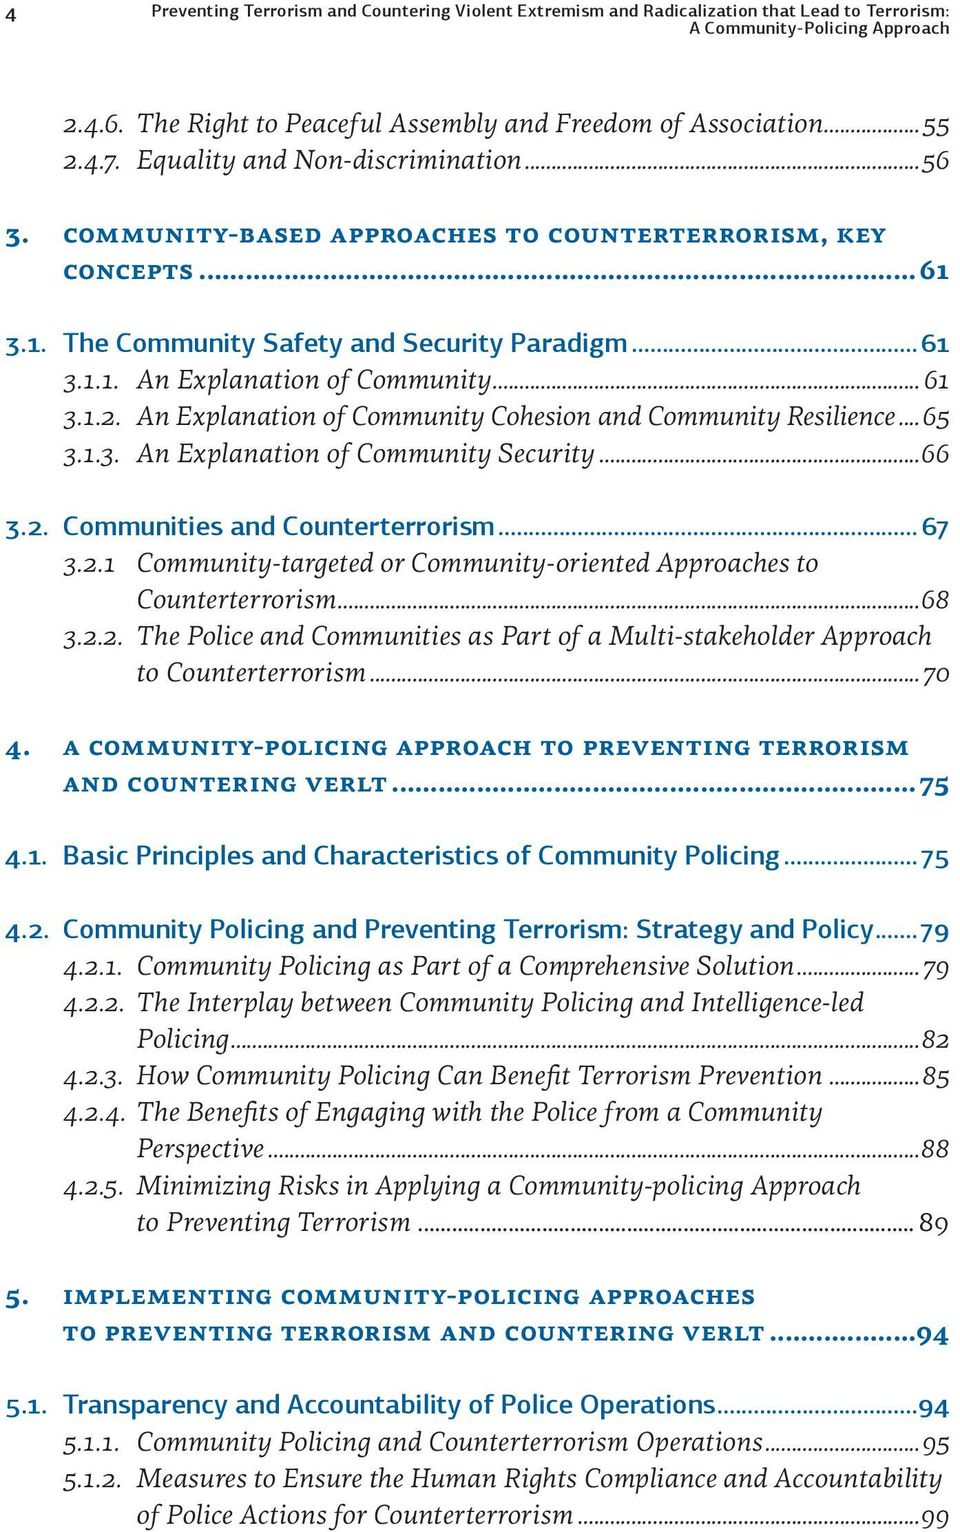 .. 61 3.1.2. An Explanation of Community Cohesion and Community Resilience...65 3.1.3. An Explanation of Community Security...66 3.2. Communities and Counterterrorism... 67 3.2.1 Community-targeted or Community-oriented Approaches to Counterterrorism.